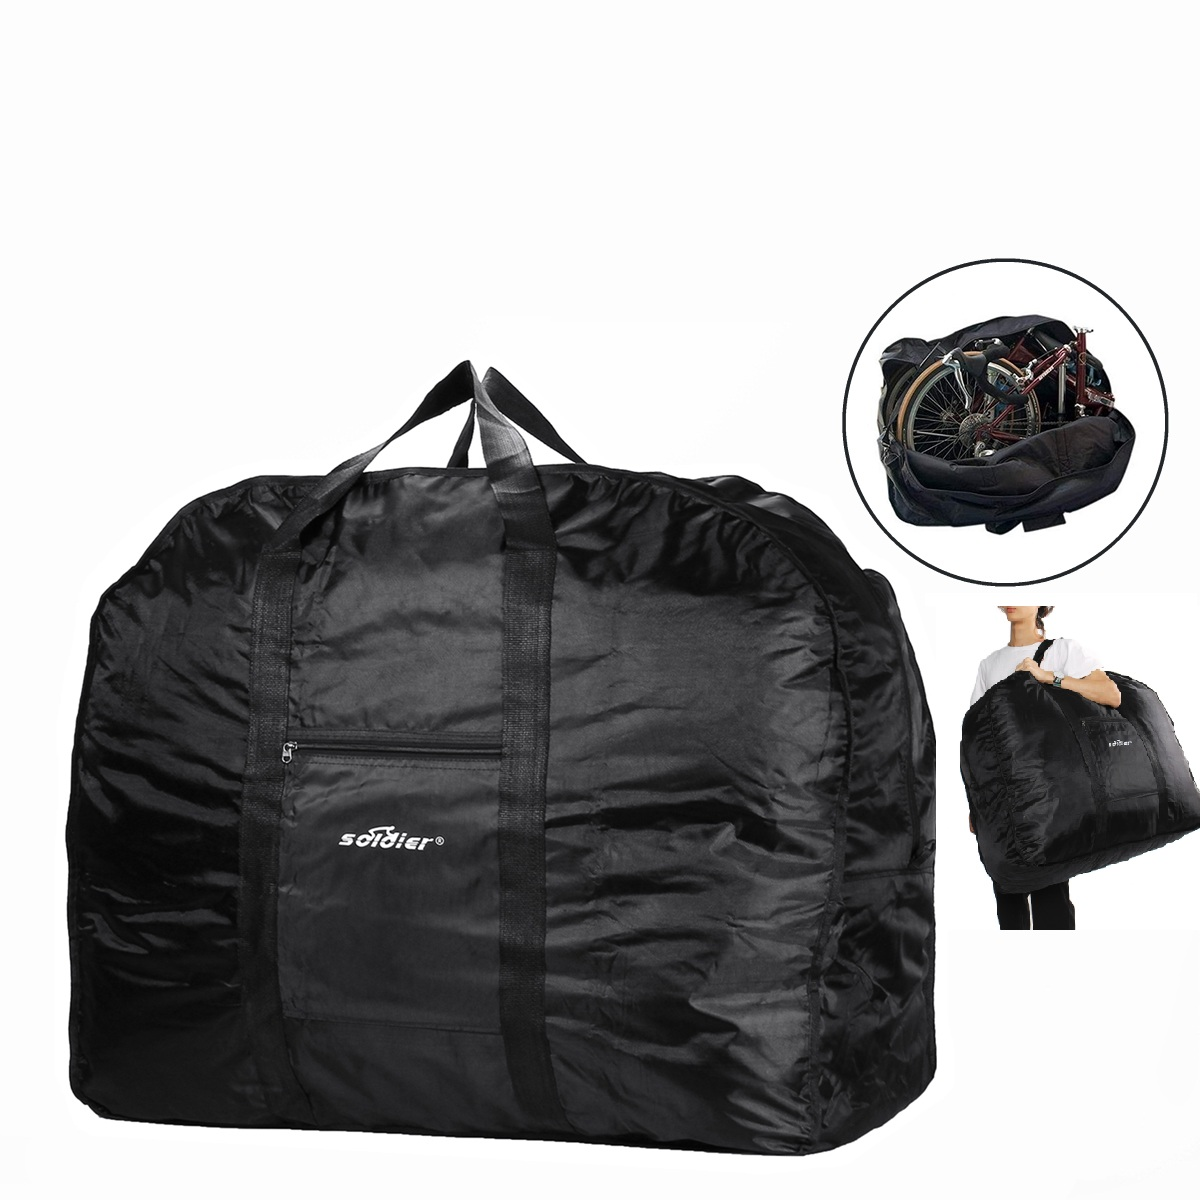 24 Travel Bike Bag Carry Transport Case Mountain Road Bicycle Lu